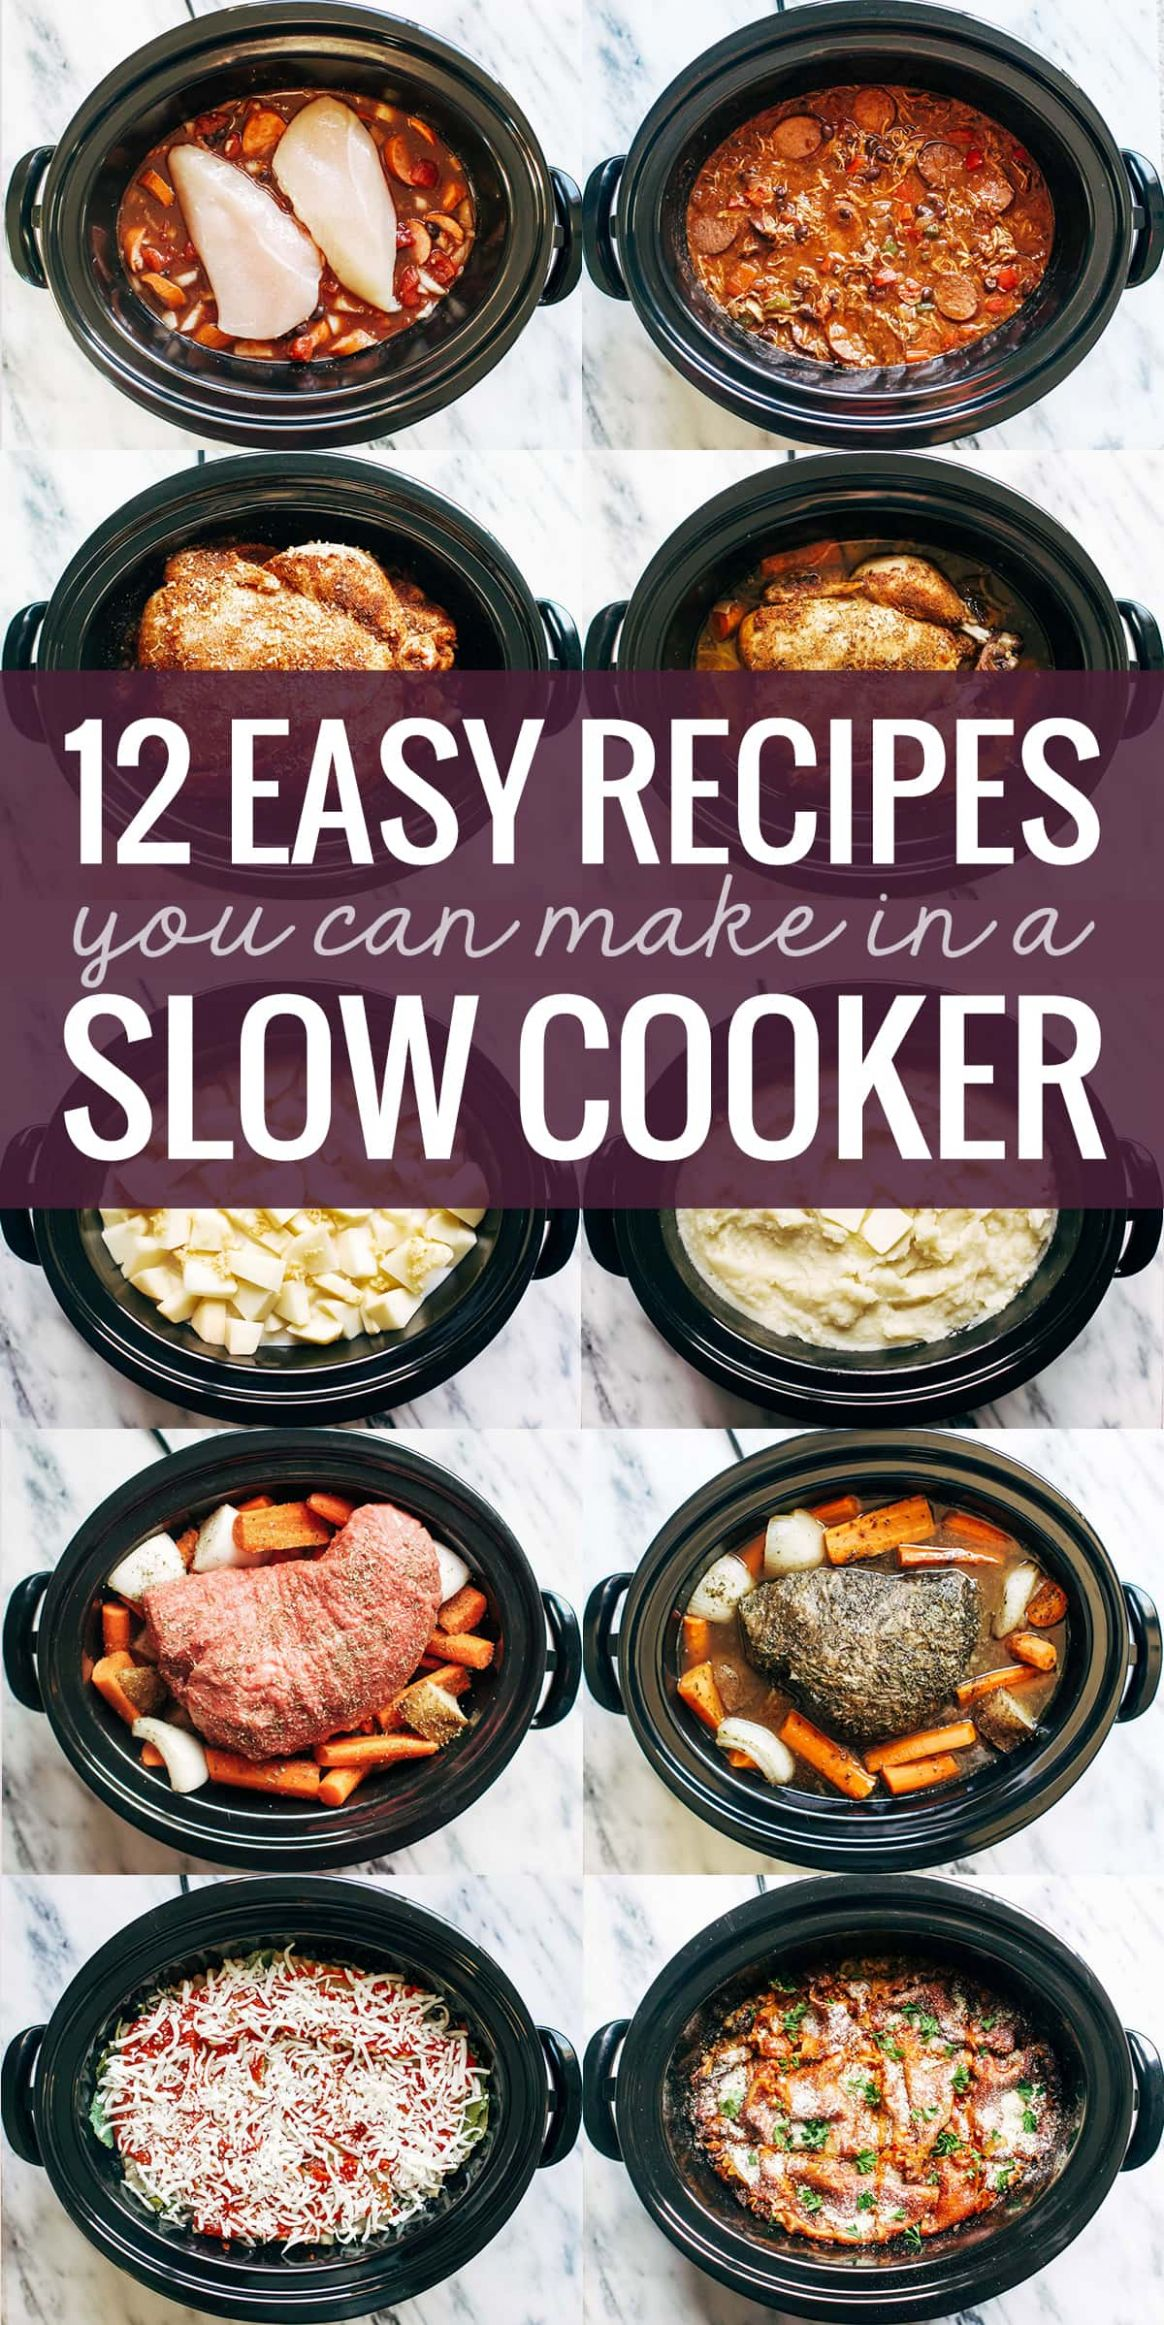 11 Easy Recipes You Can Make in a Slow Cooker - Pinch of Yum